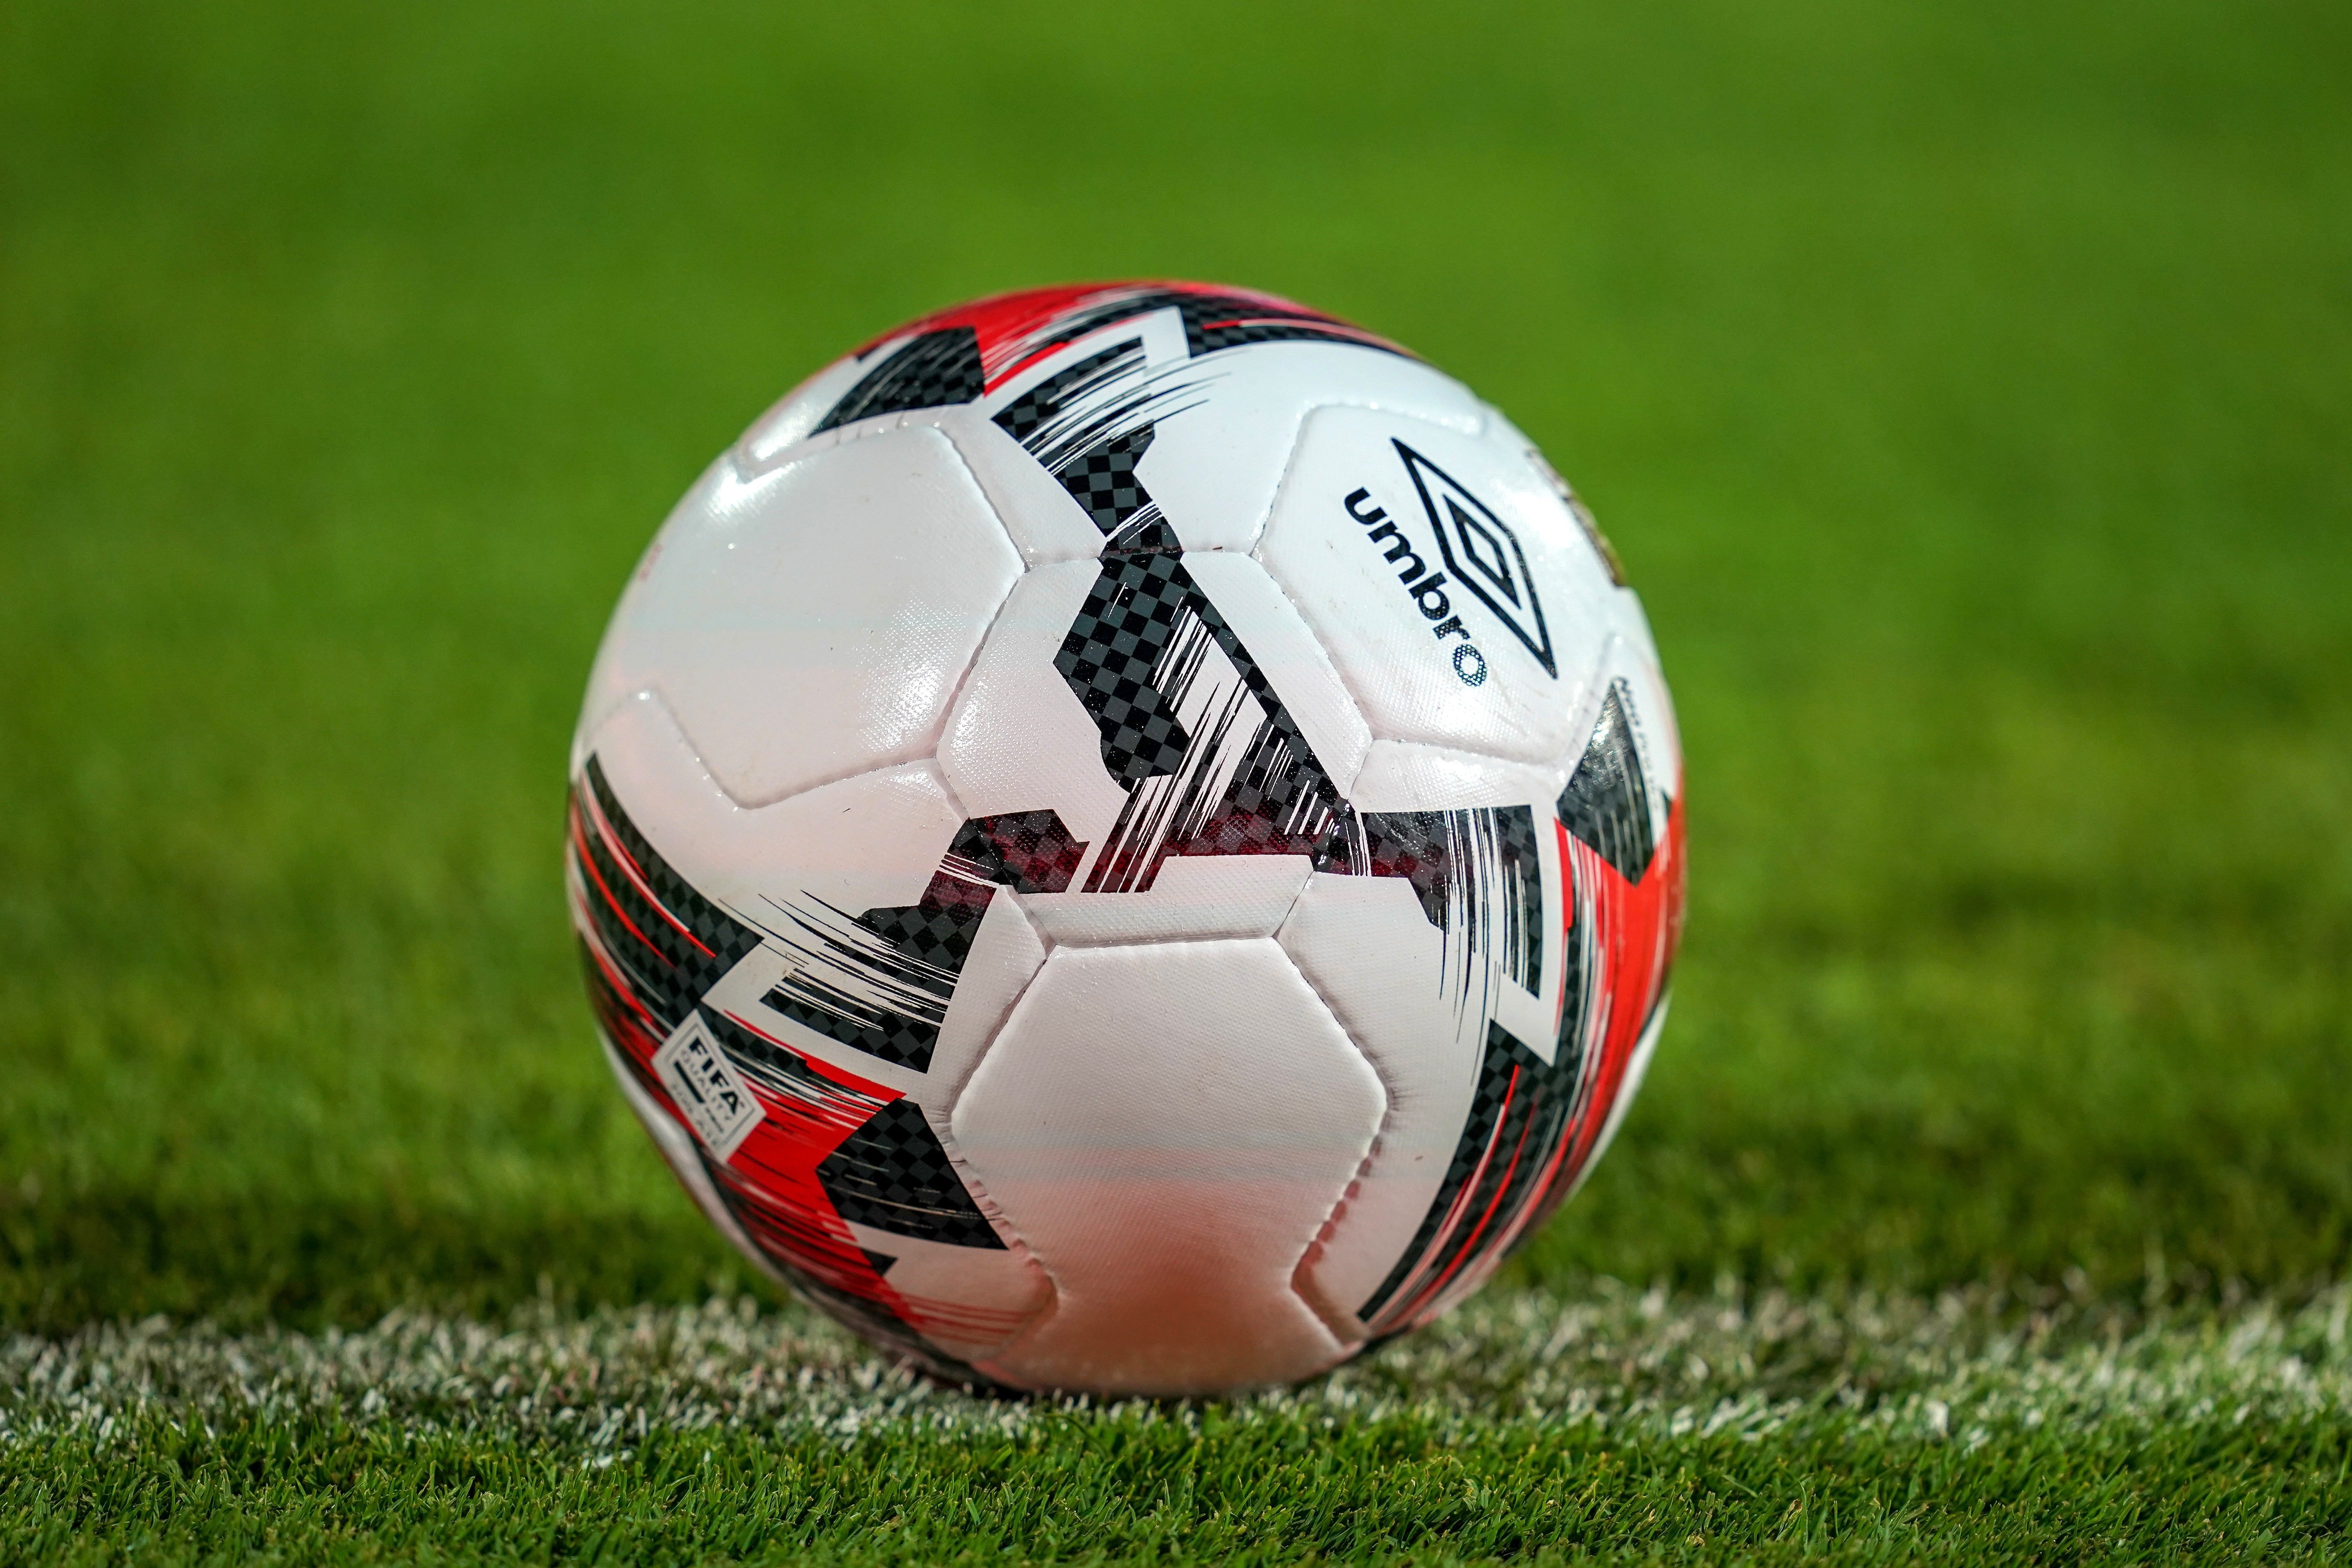 Mandatory Credit: Photo by Ulrik Pedersen/CSM/Shutterstock (10323991e) Umbro ball during the African Cup of Nations match between South Africa and Namibia at the Al Salam Stadium in Cairo, Egypt South Africa v Namibia - African Cup of Nations, Cairo, USA - 28 Jun 2019